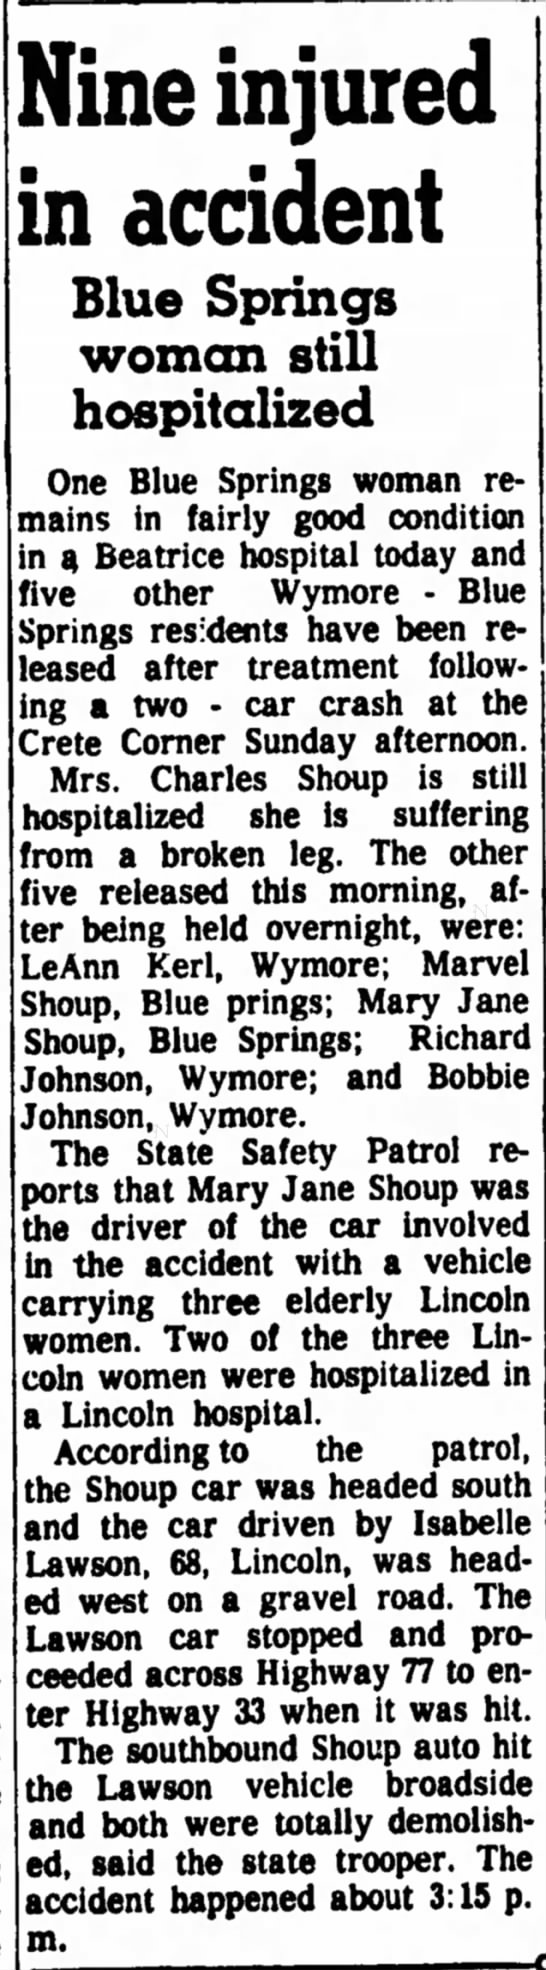 Kerl, LeAnn Accident 4 Nov 1963